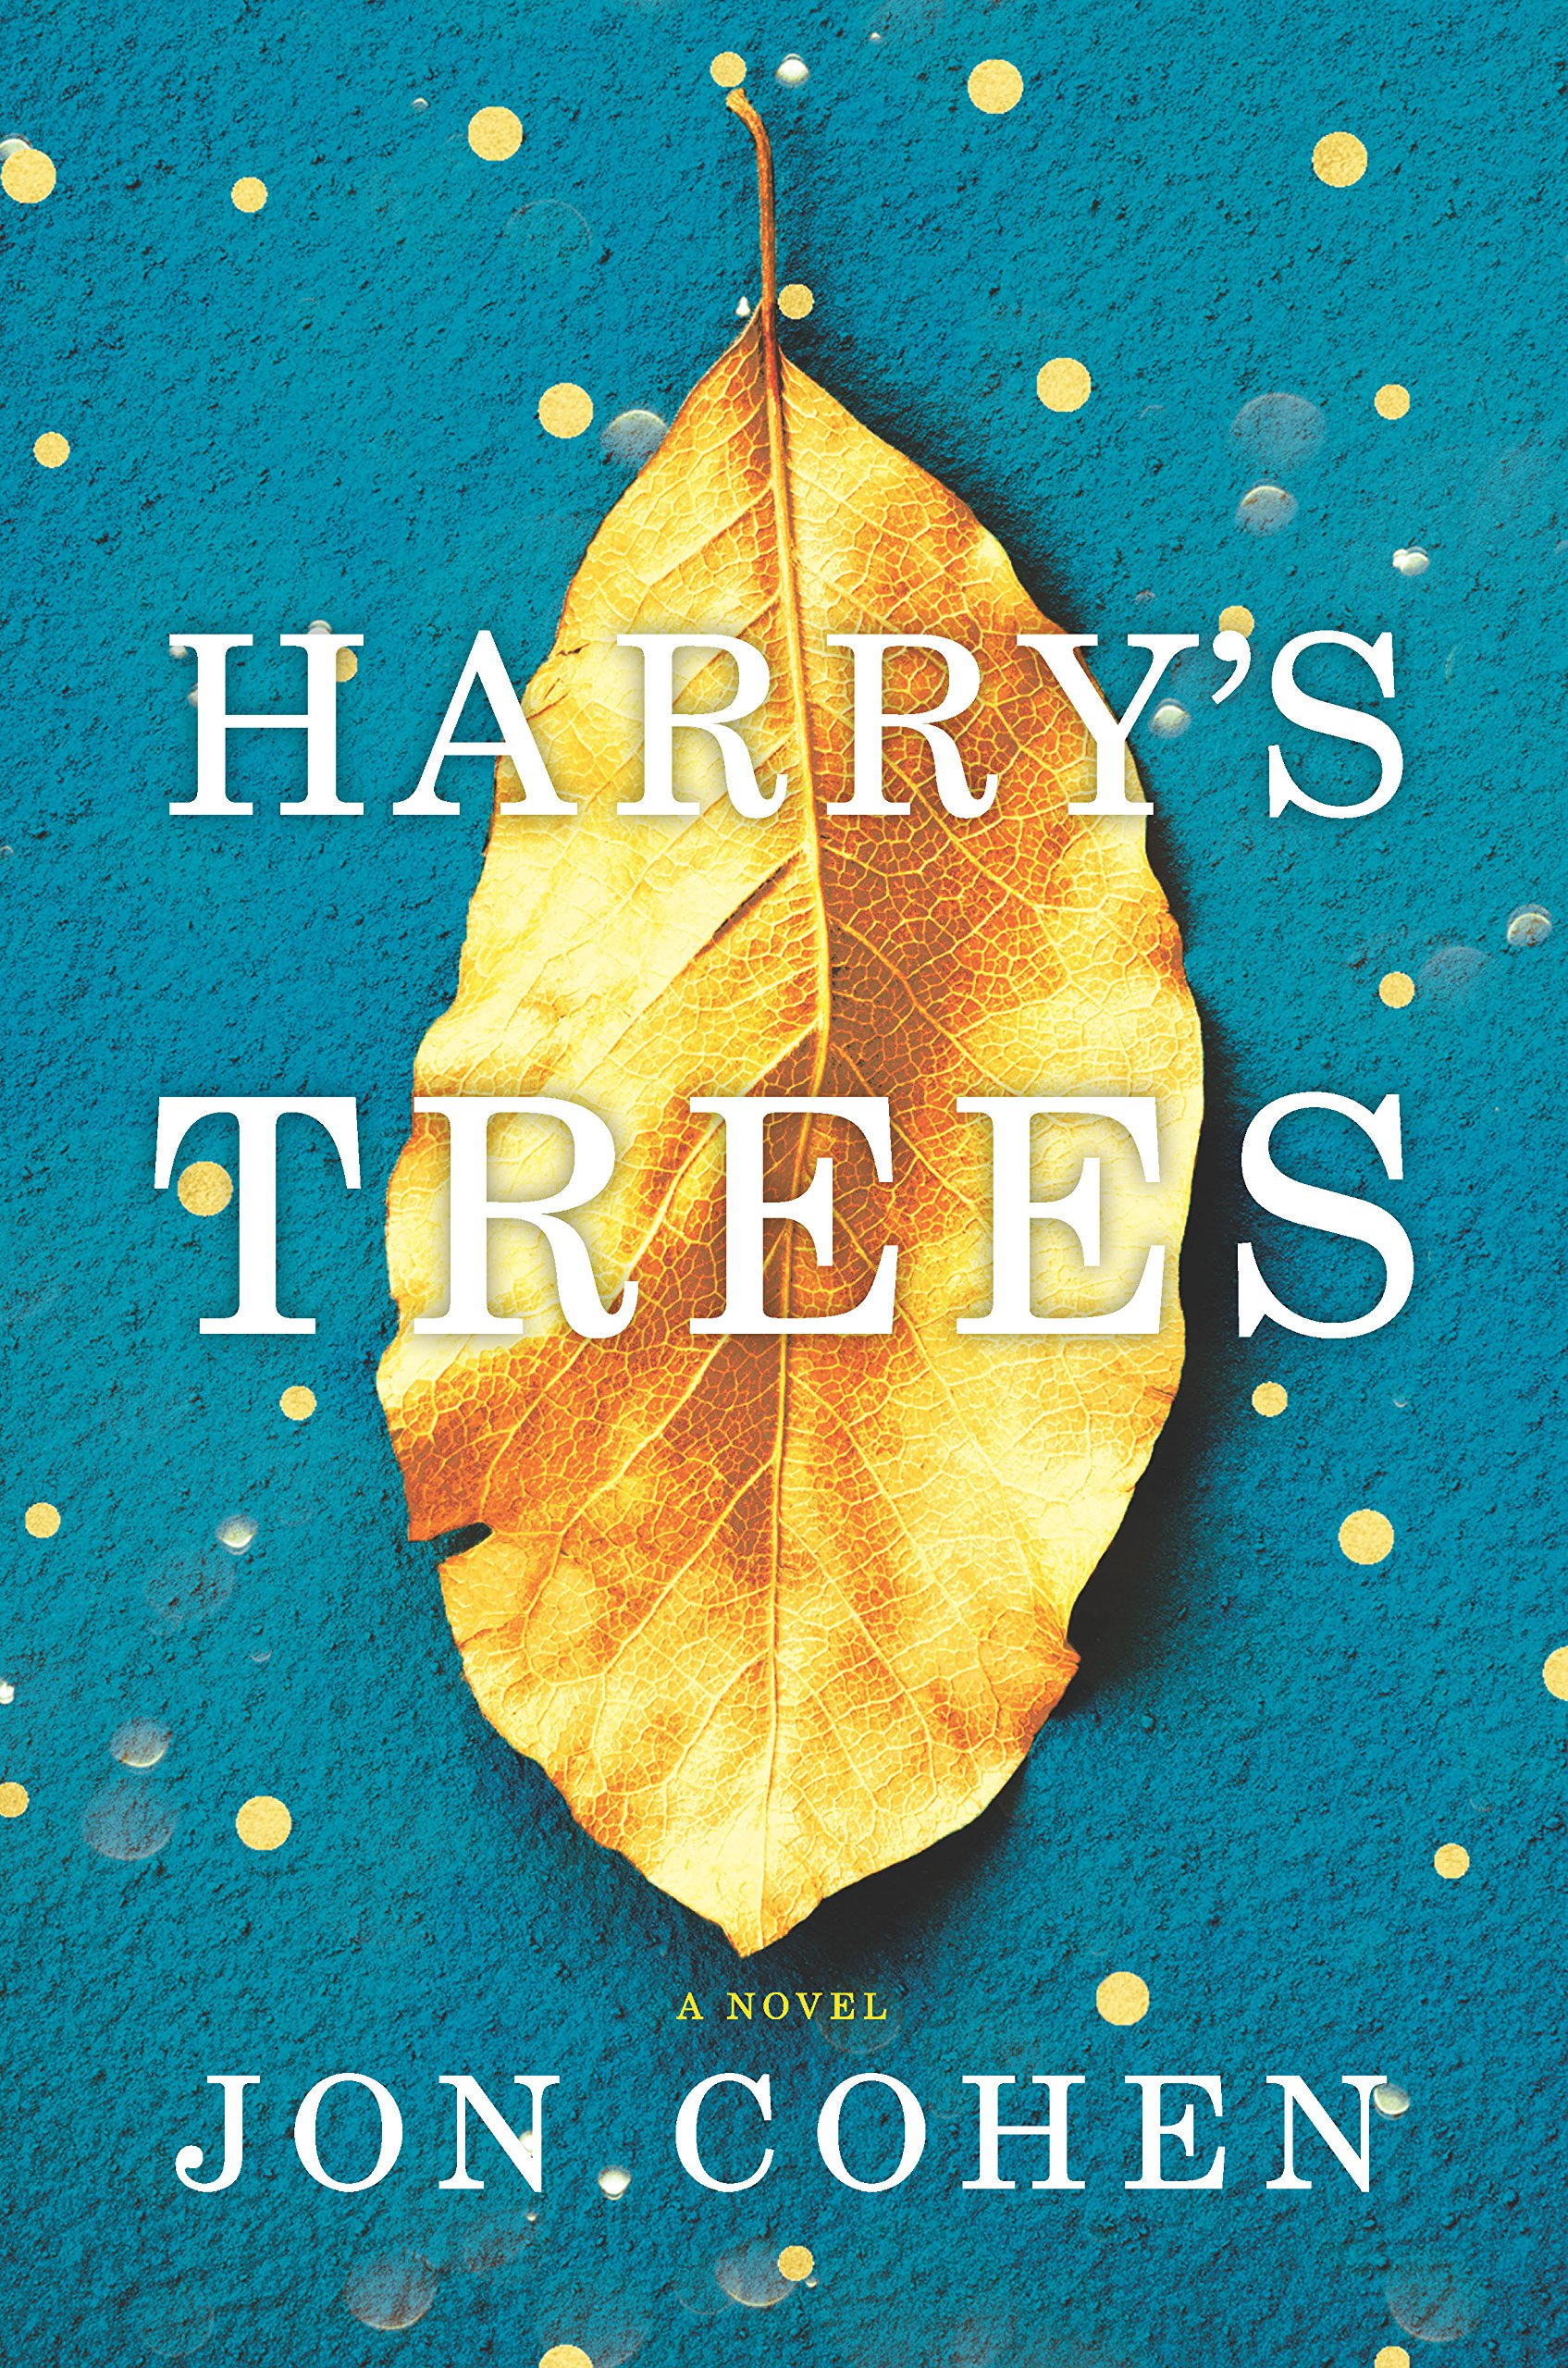 Image result for harrys trees